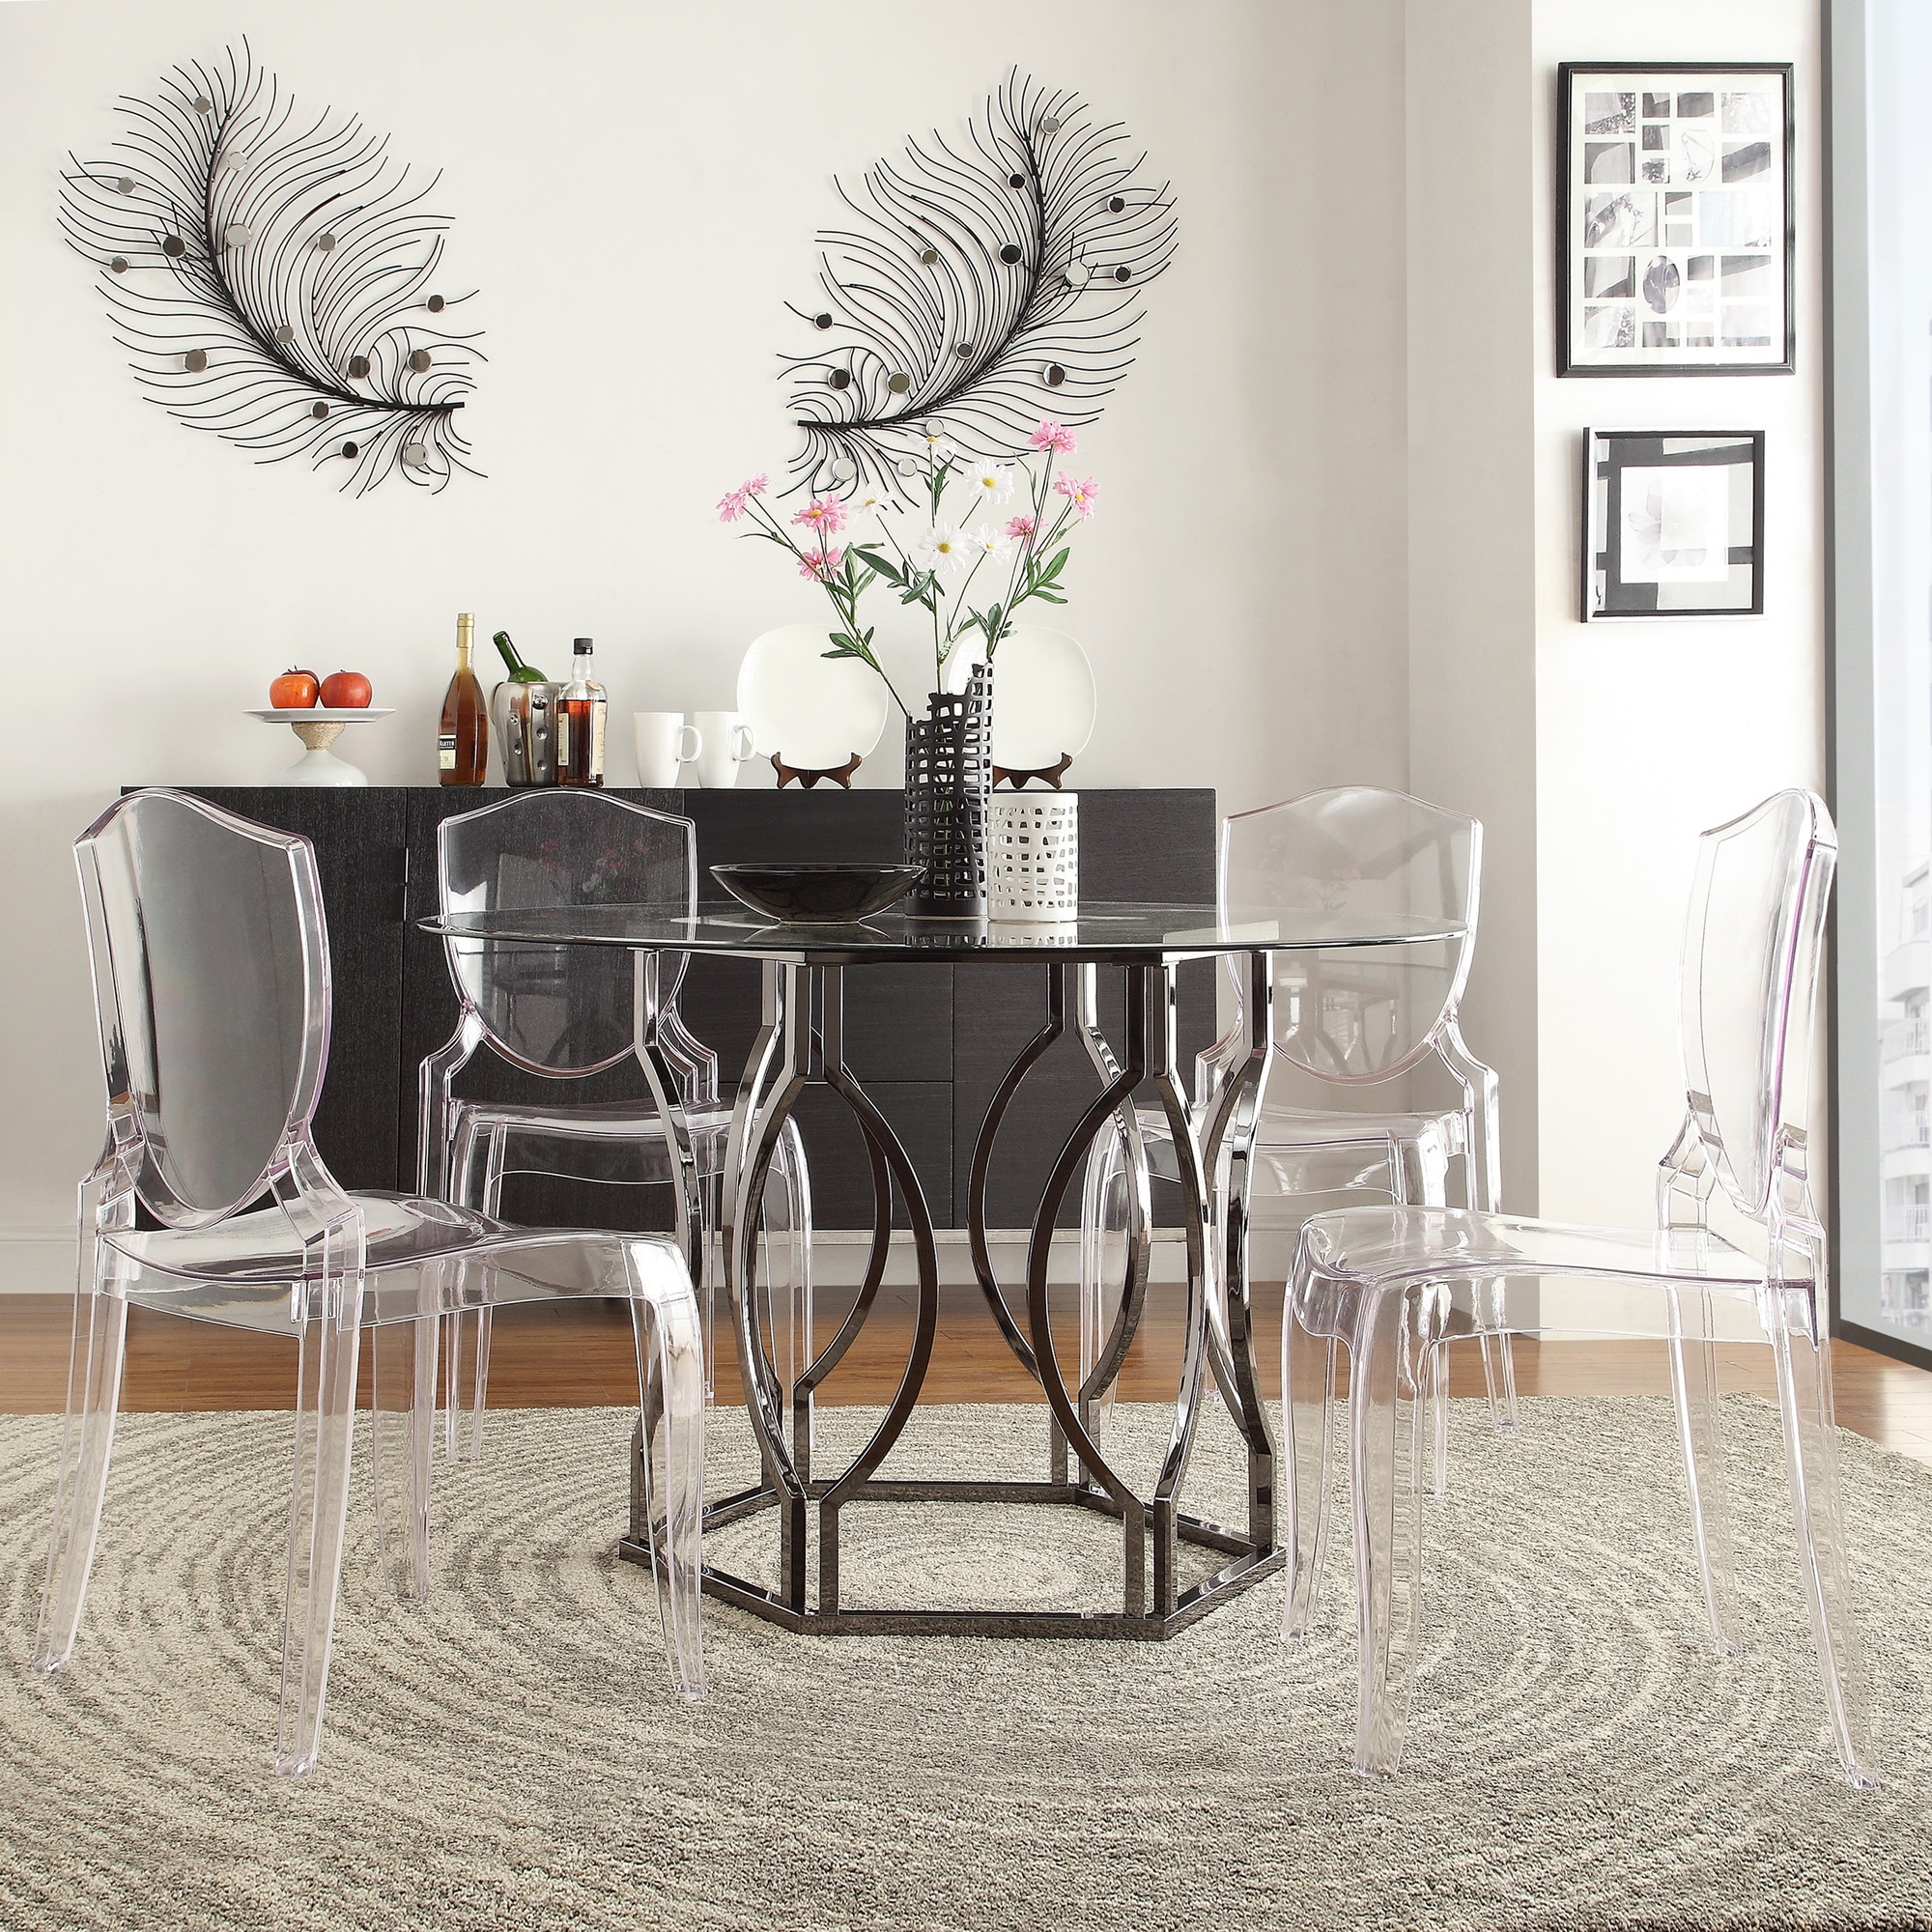 Concord Black Nickel Plated Round Glass Dining Table by iNSPIRE Q Bold -  Free Shipping Today - Overstock.com - 16357759